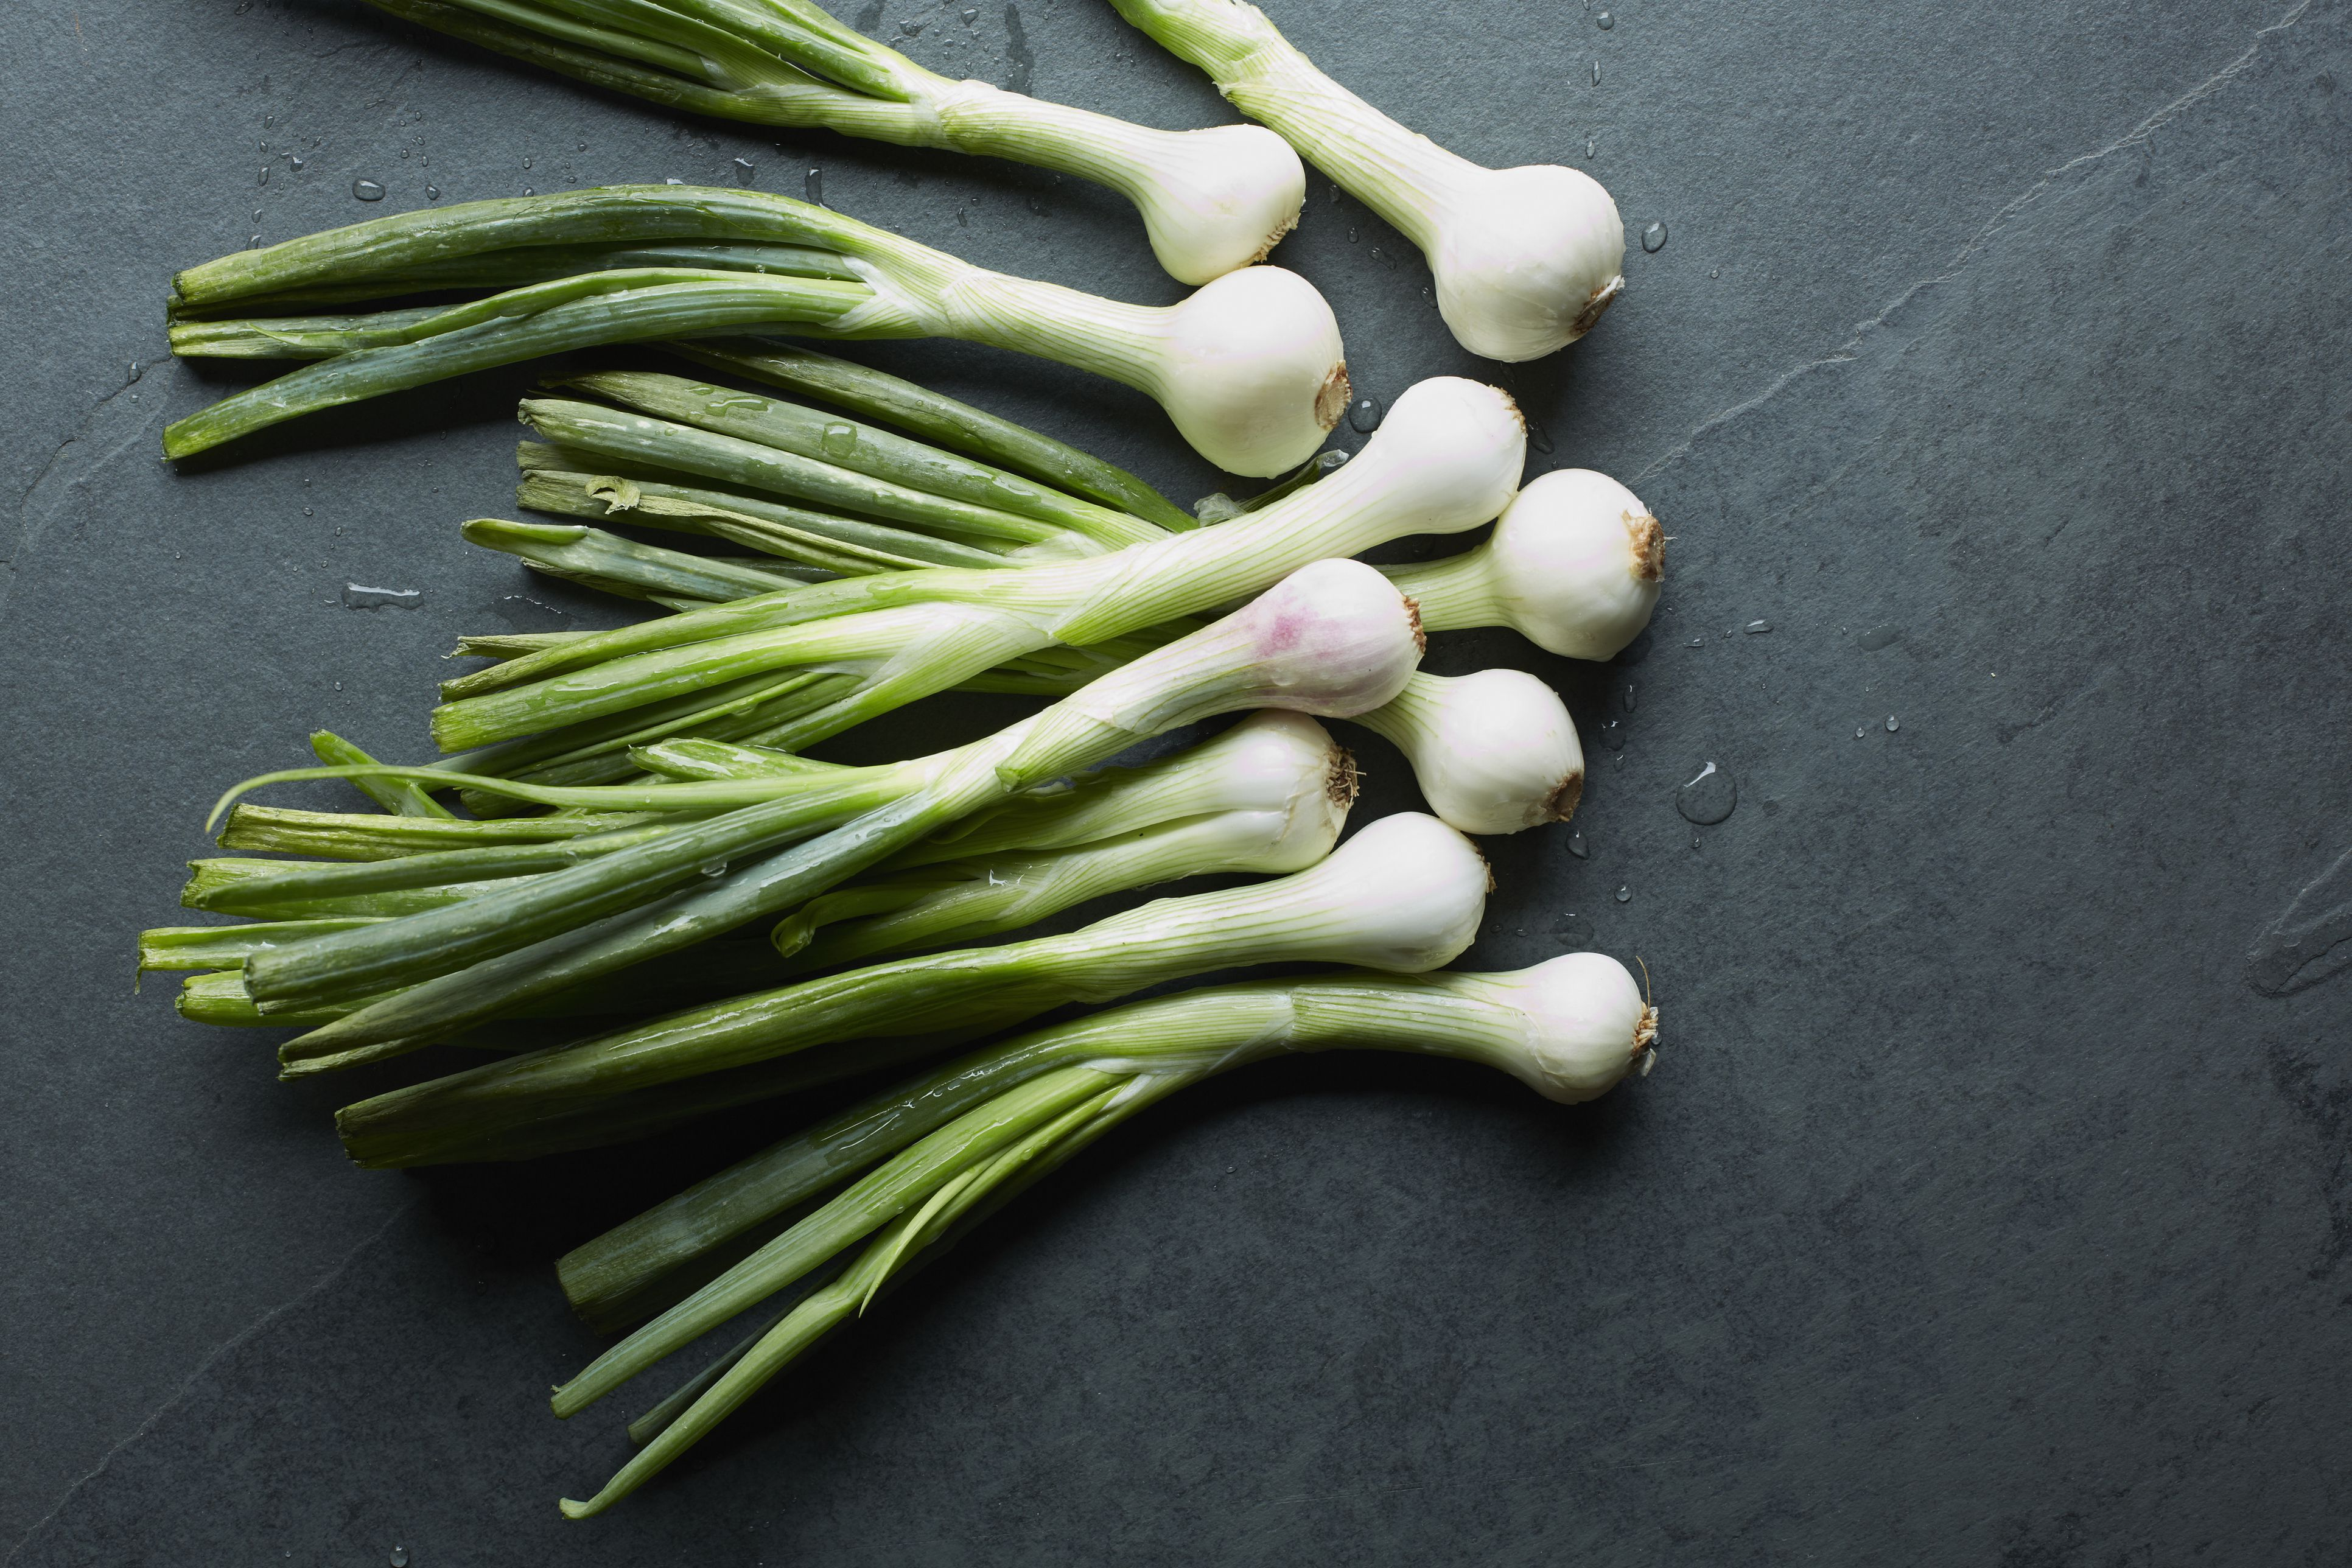 Overhead view of fresh whole spring onions on table